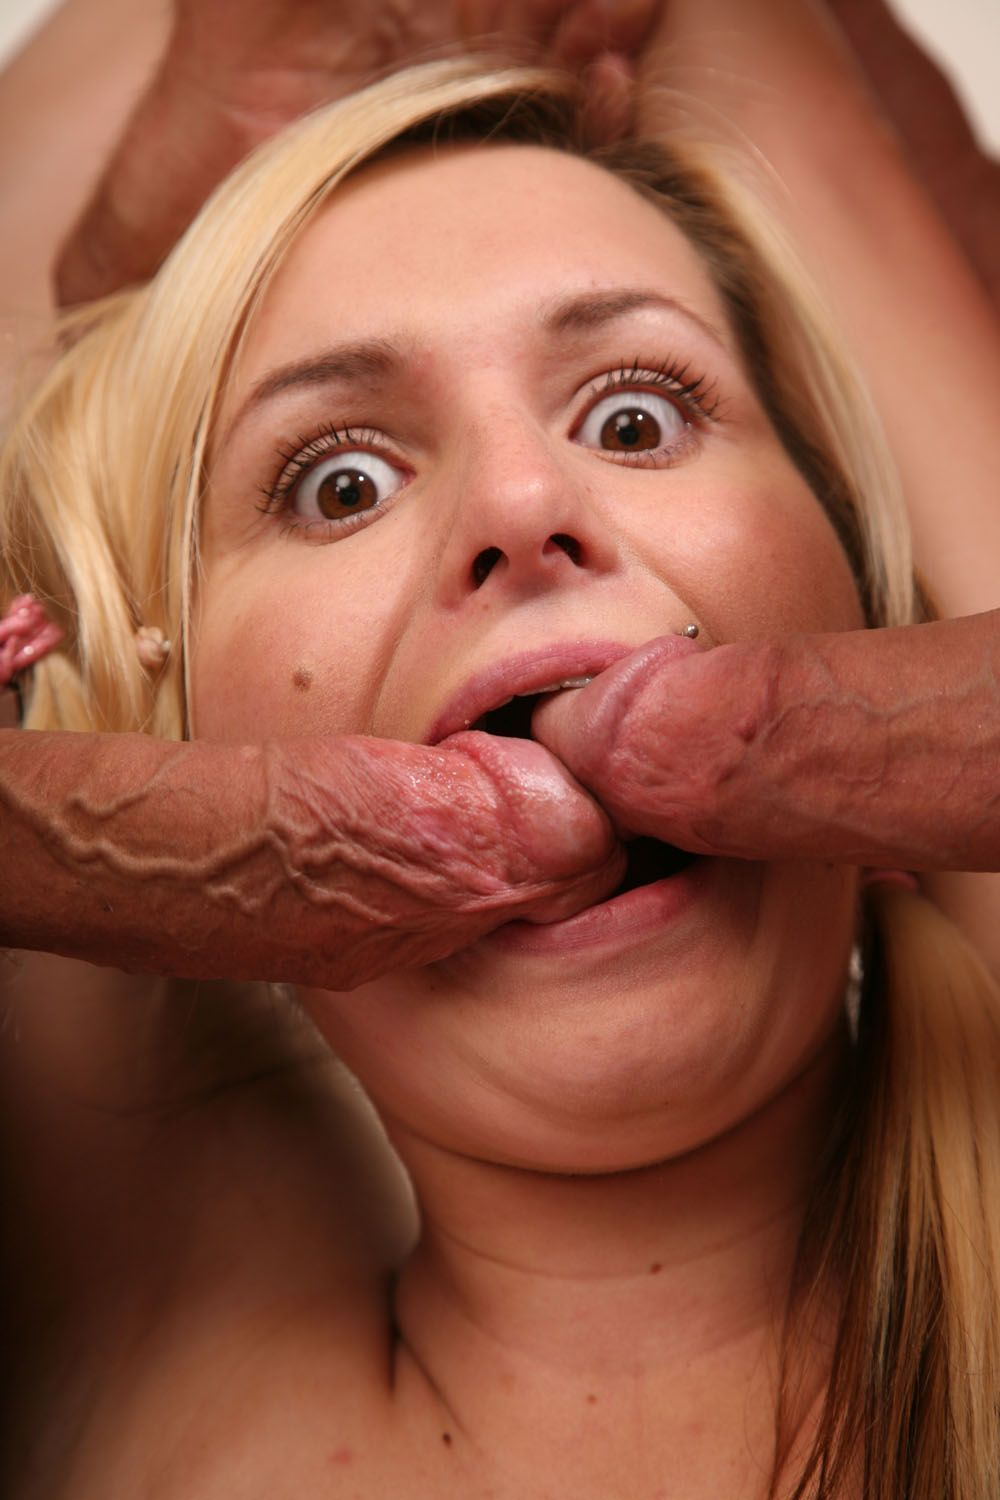 2 Cocks In 1 two cocks mouth - porn tube. comments: 1